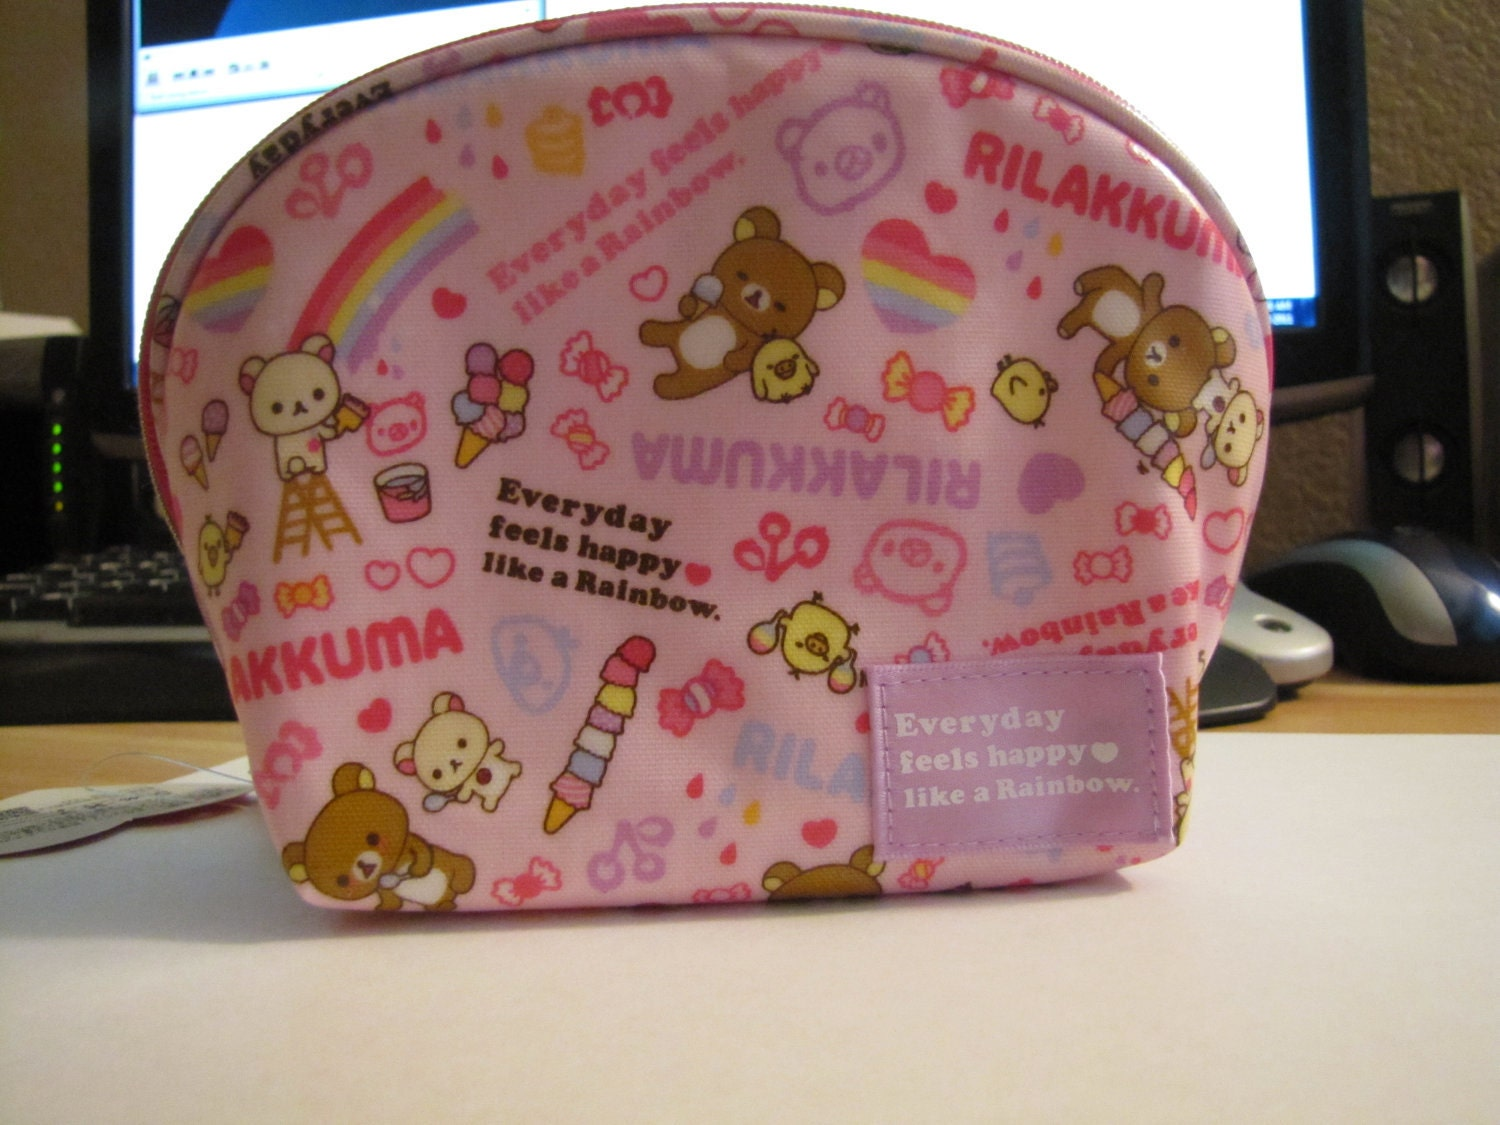 San-x Rilakkuma kawaii accessory makeup pouch